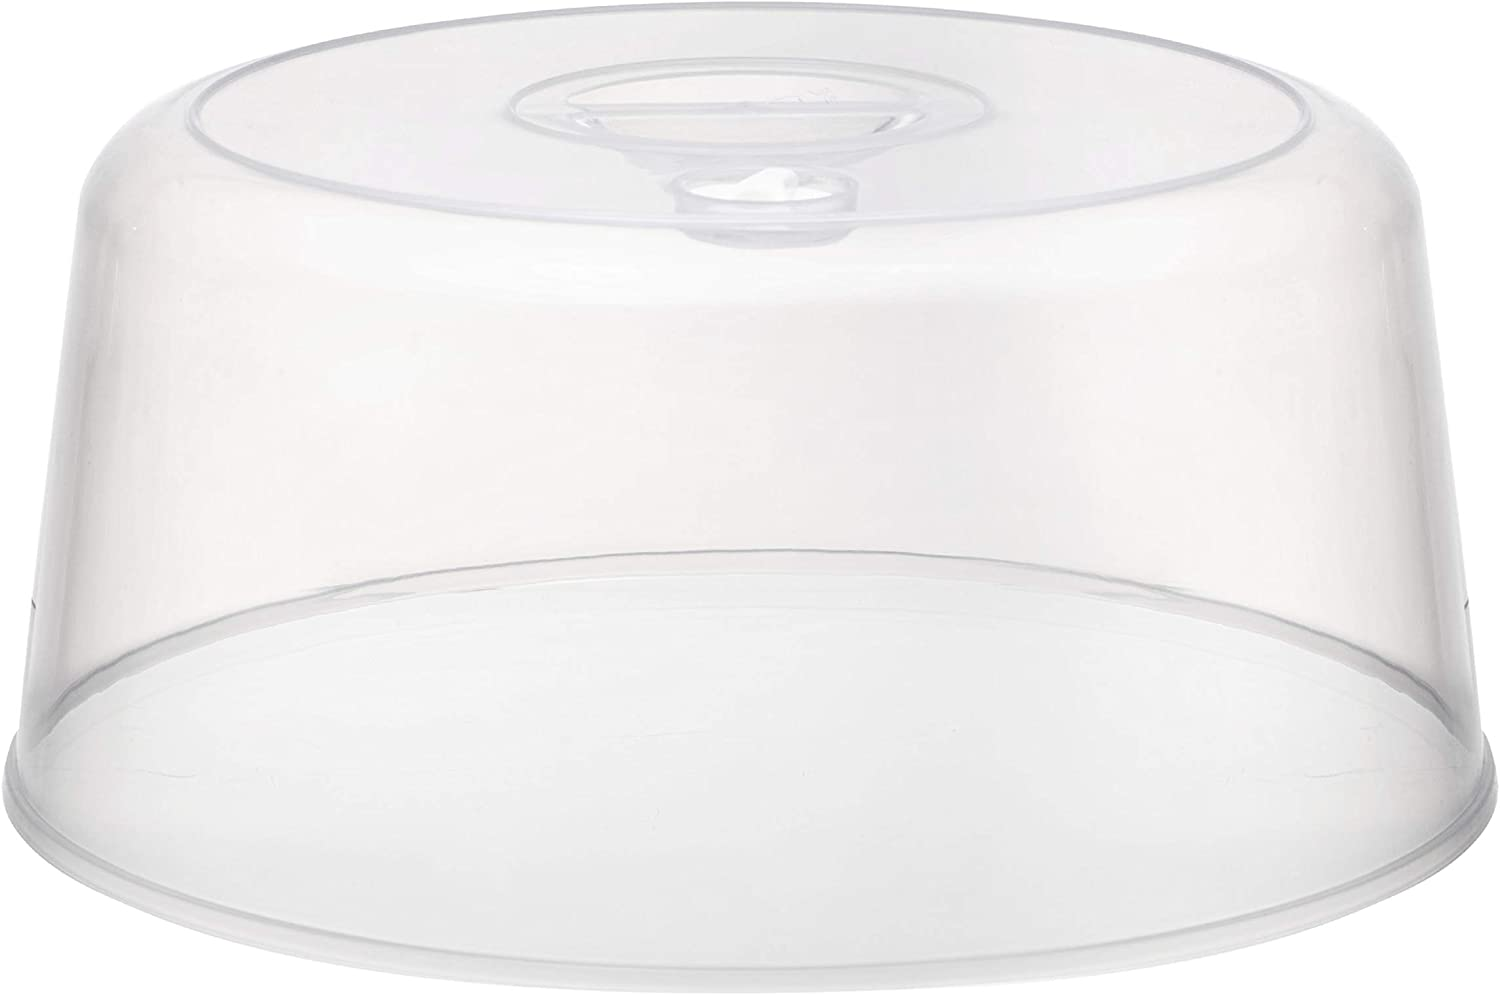 Clear Tall Microwave Plate Cover - Splatter Guard Lid for Heating Dish Inside Microwave - Multipurpose Food Covering with Steam Vented Holes and Handle | BPA-Free (1 Pack)